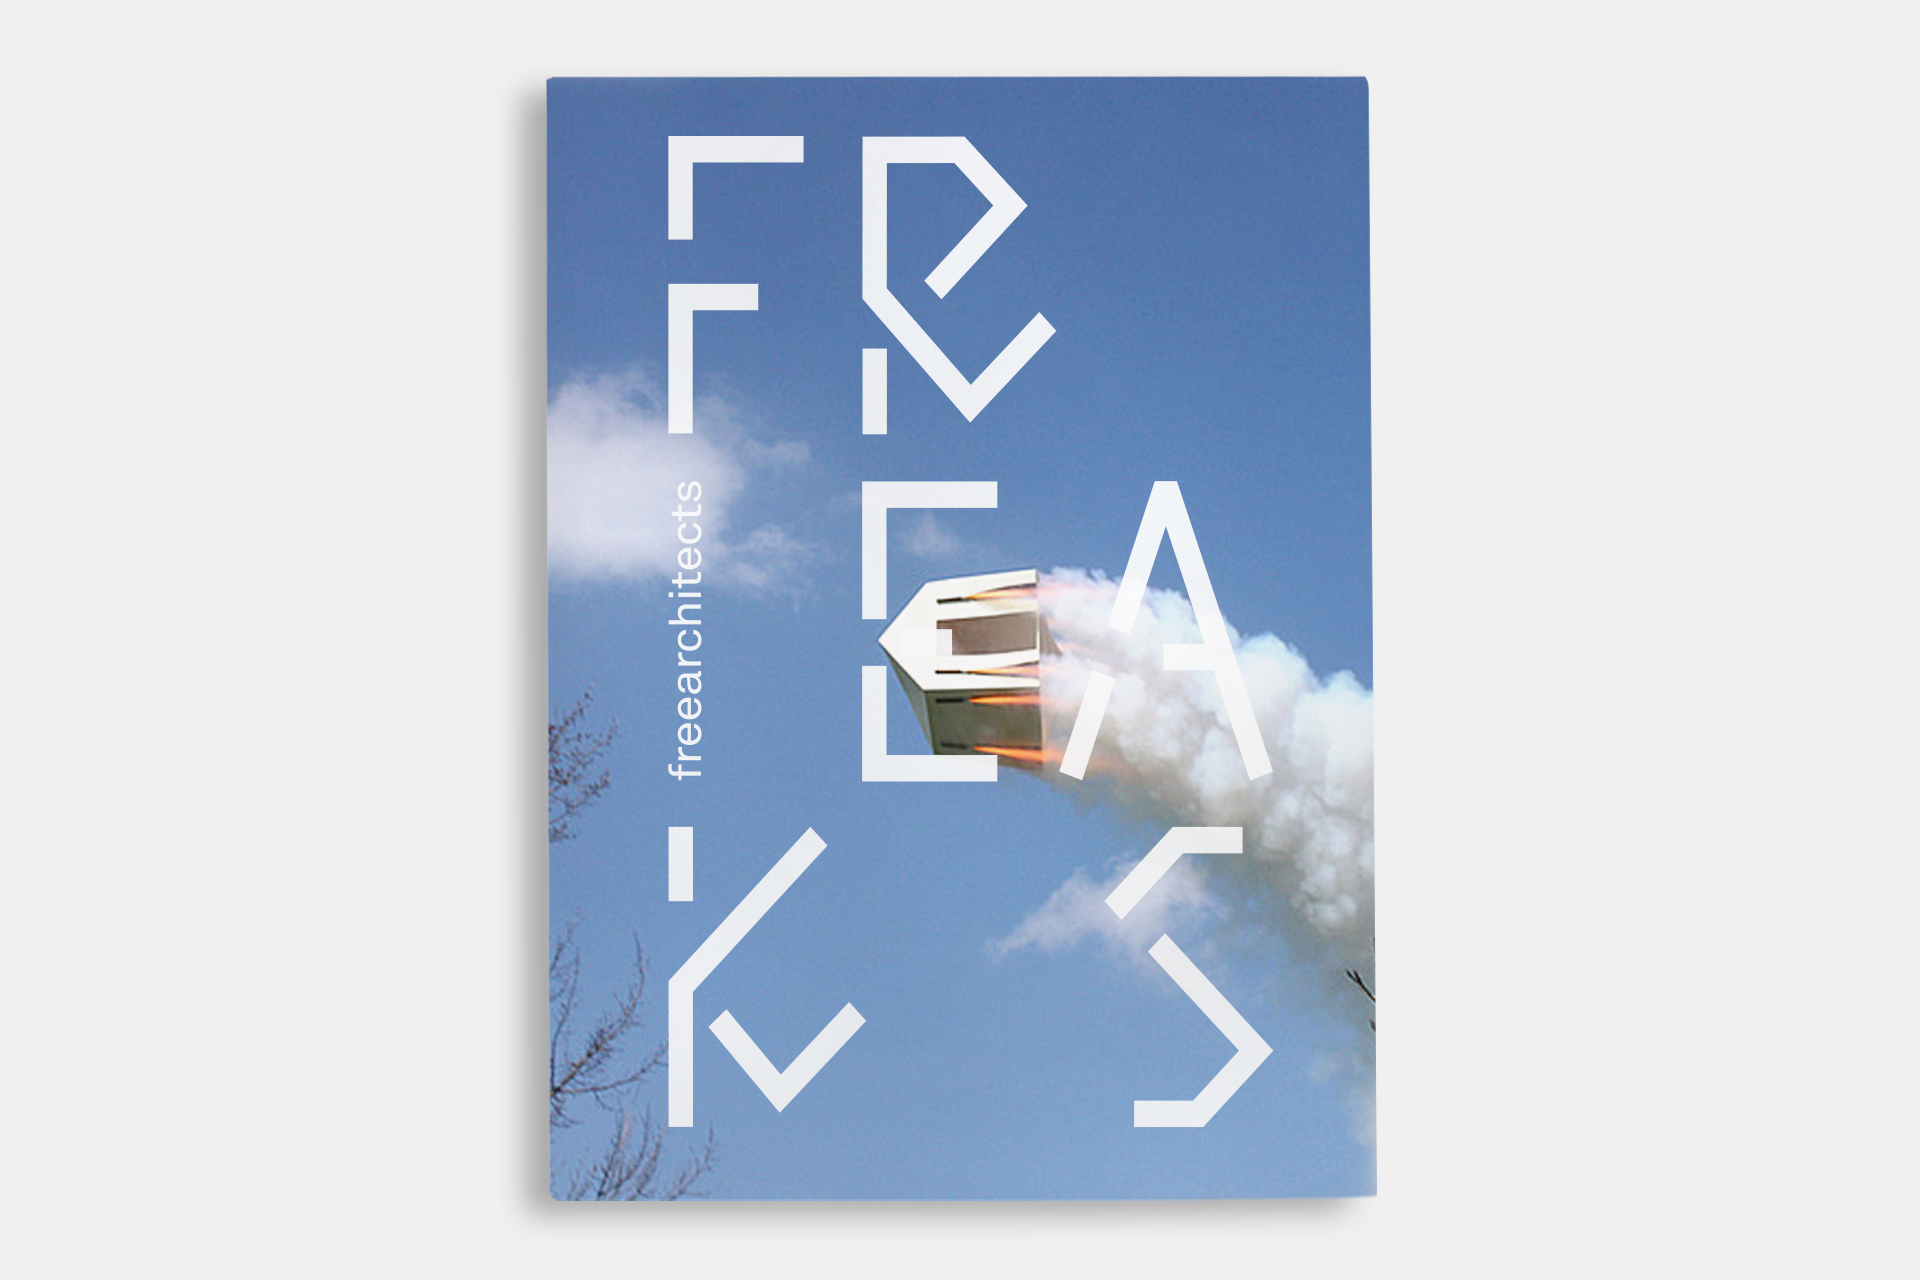 FormaBoom design graphique Freaks architectes